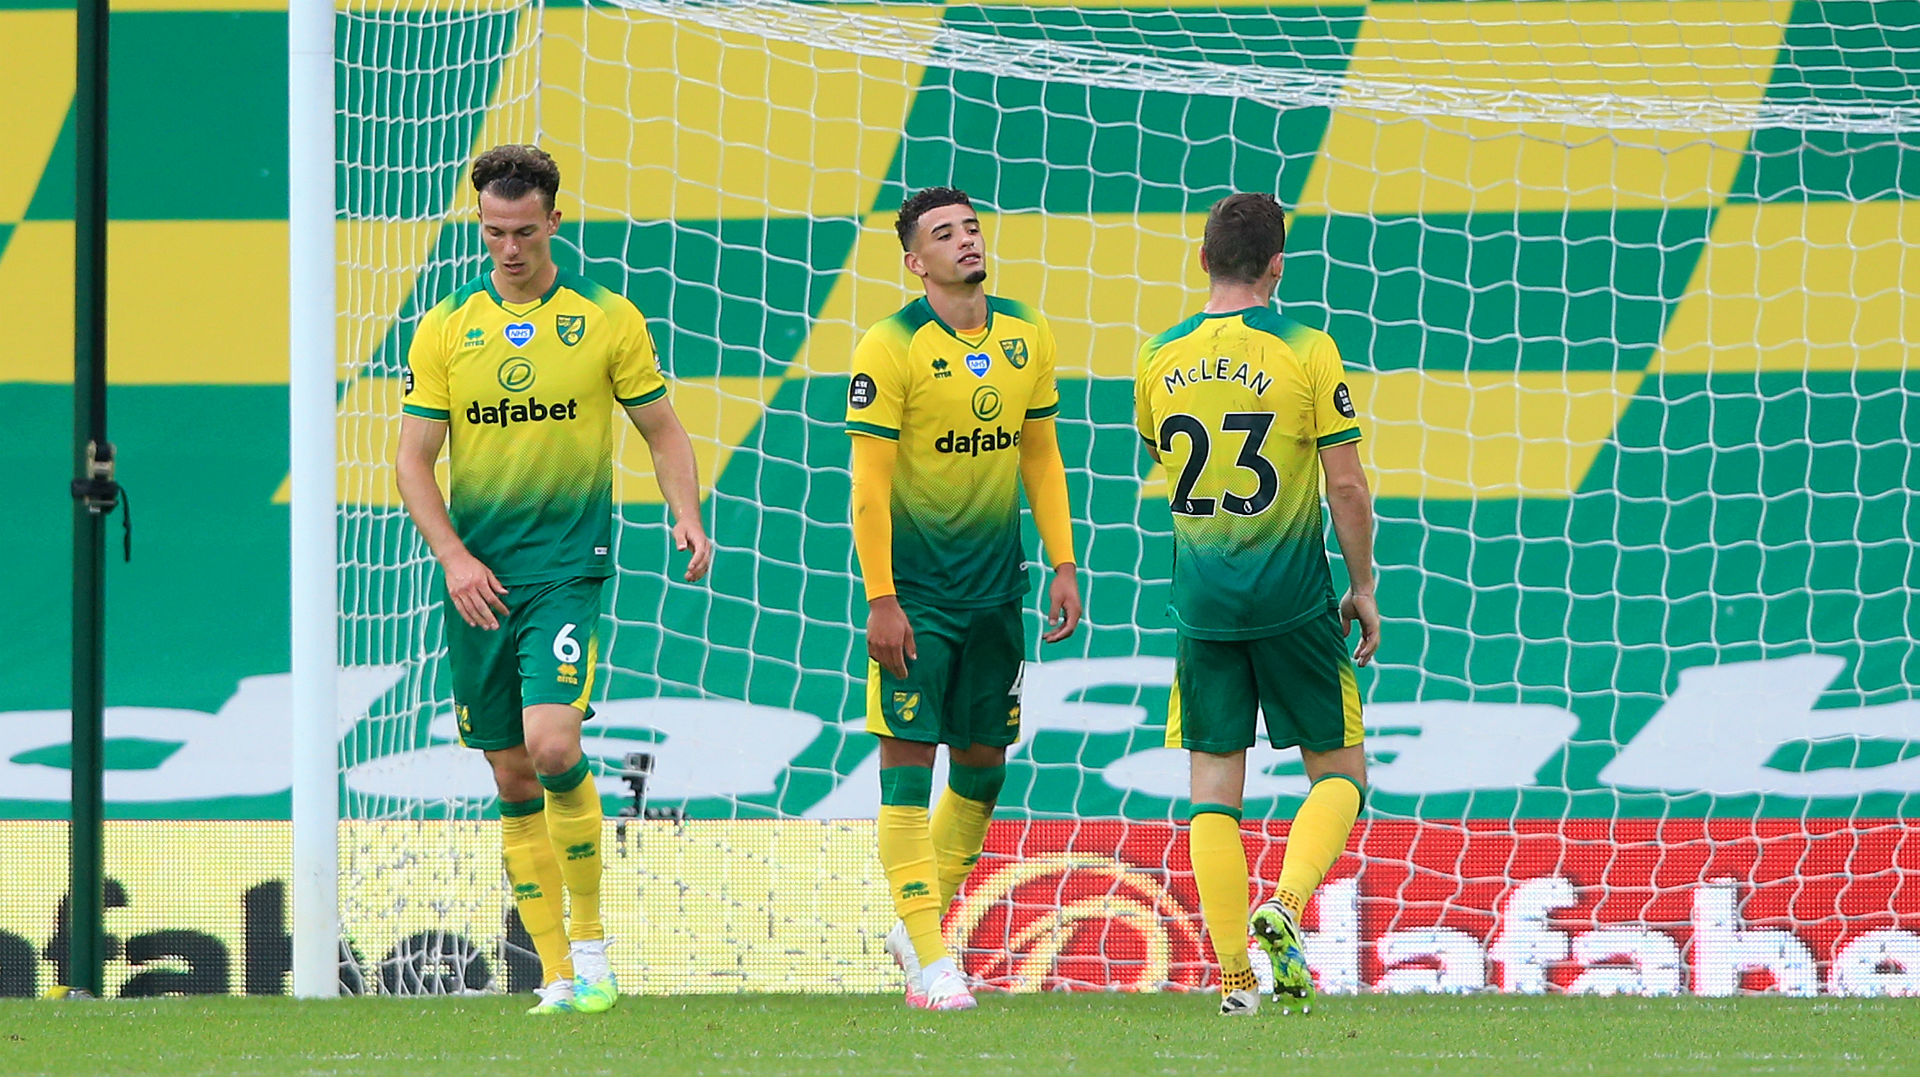 Norwich City vs. Burnley - Football Match Report